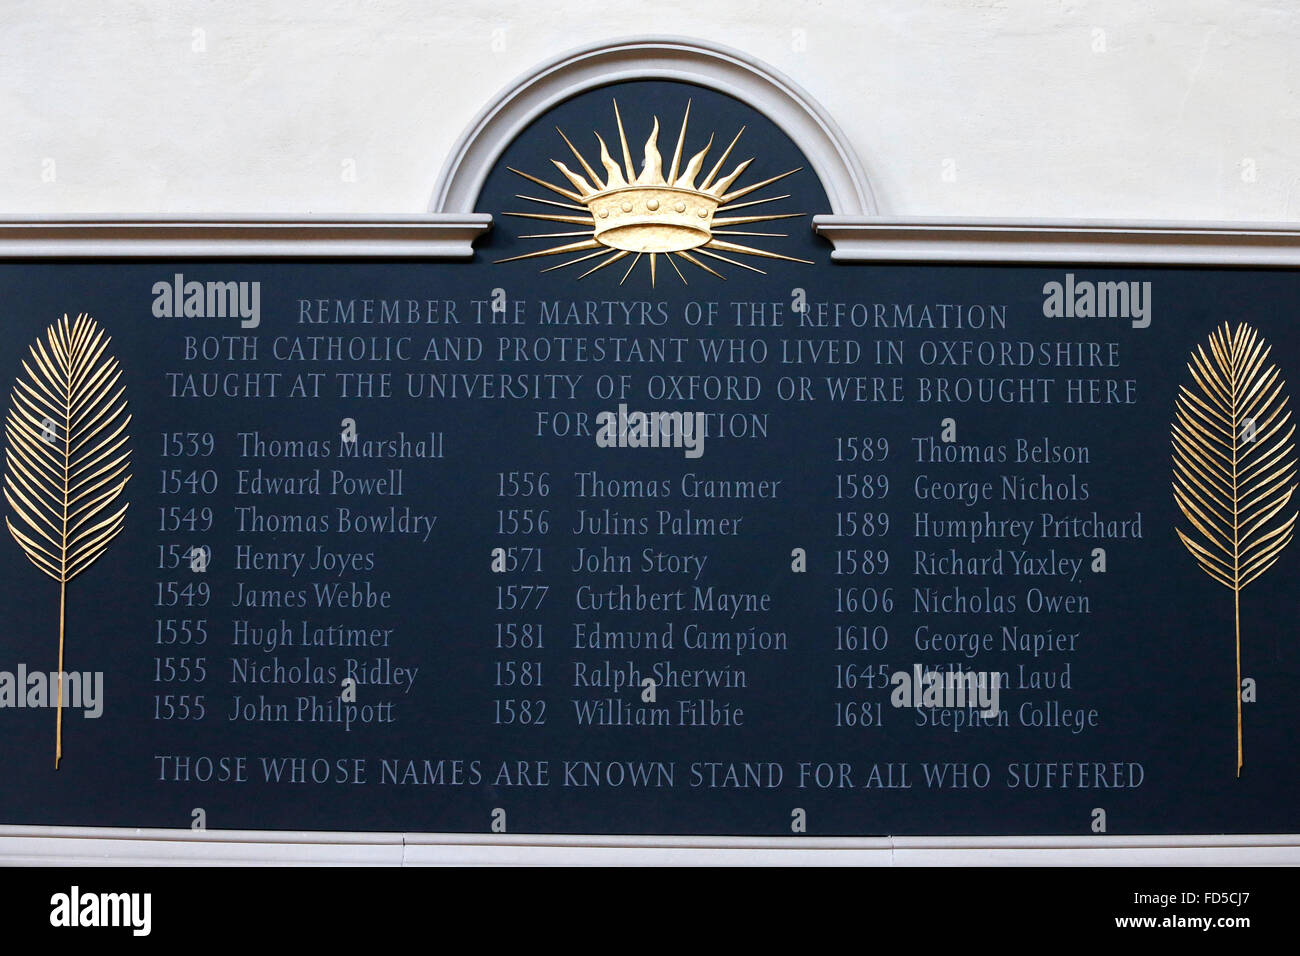 University church of St Mary the Virgin, Oxford. Martyr memorial. - Stock Image